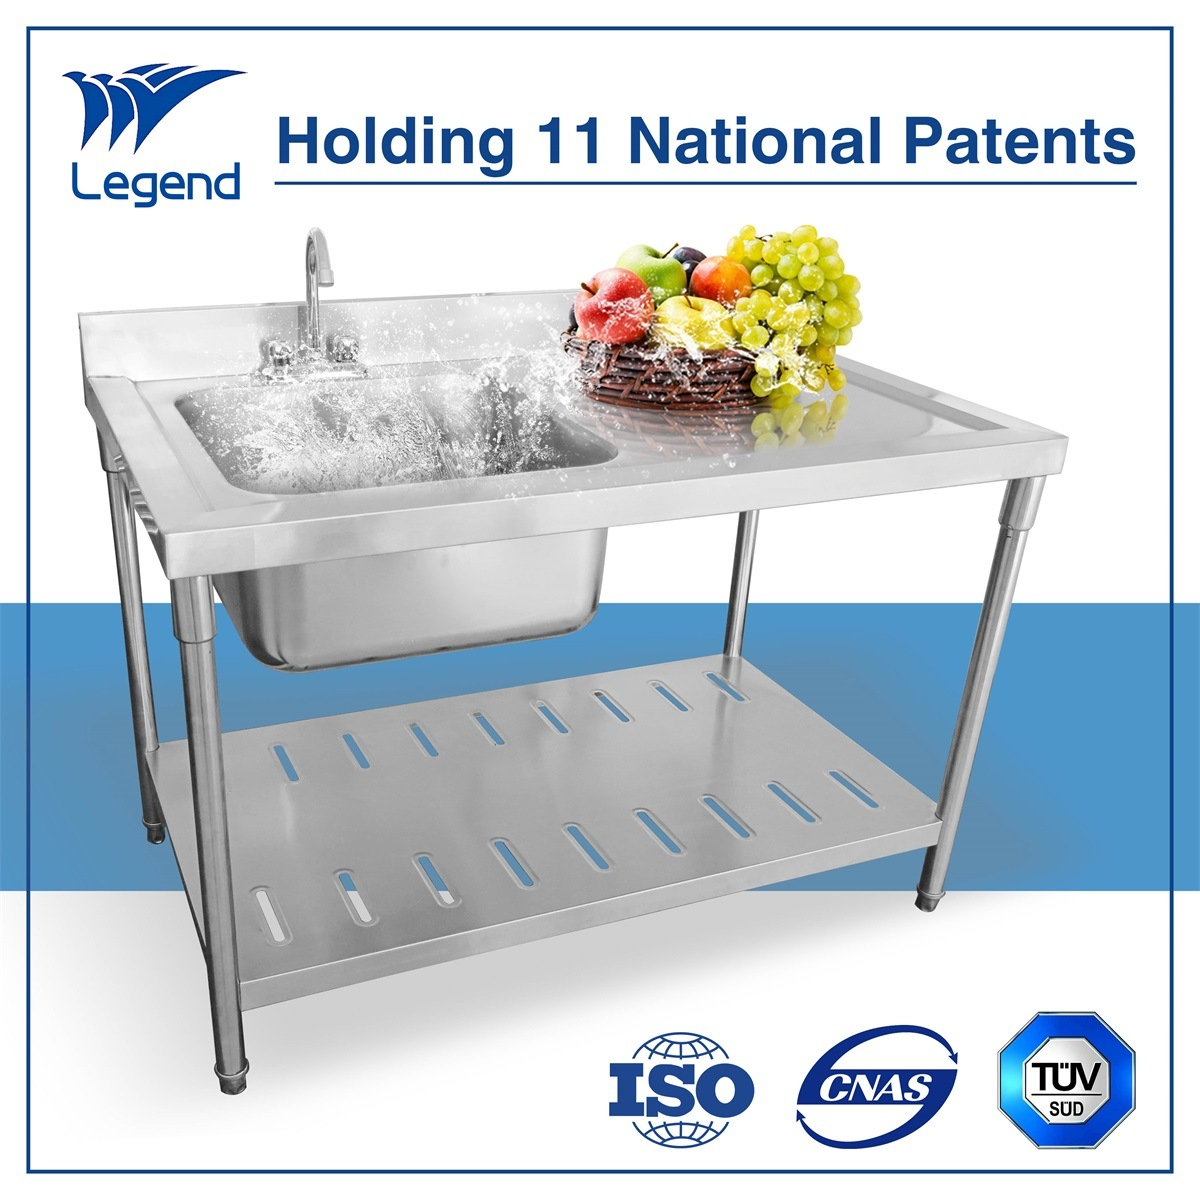 Top Rated Stainless Steel Prep Table with Sink